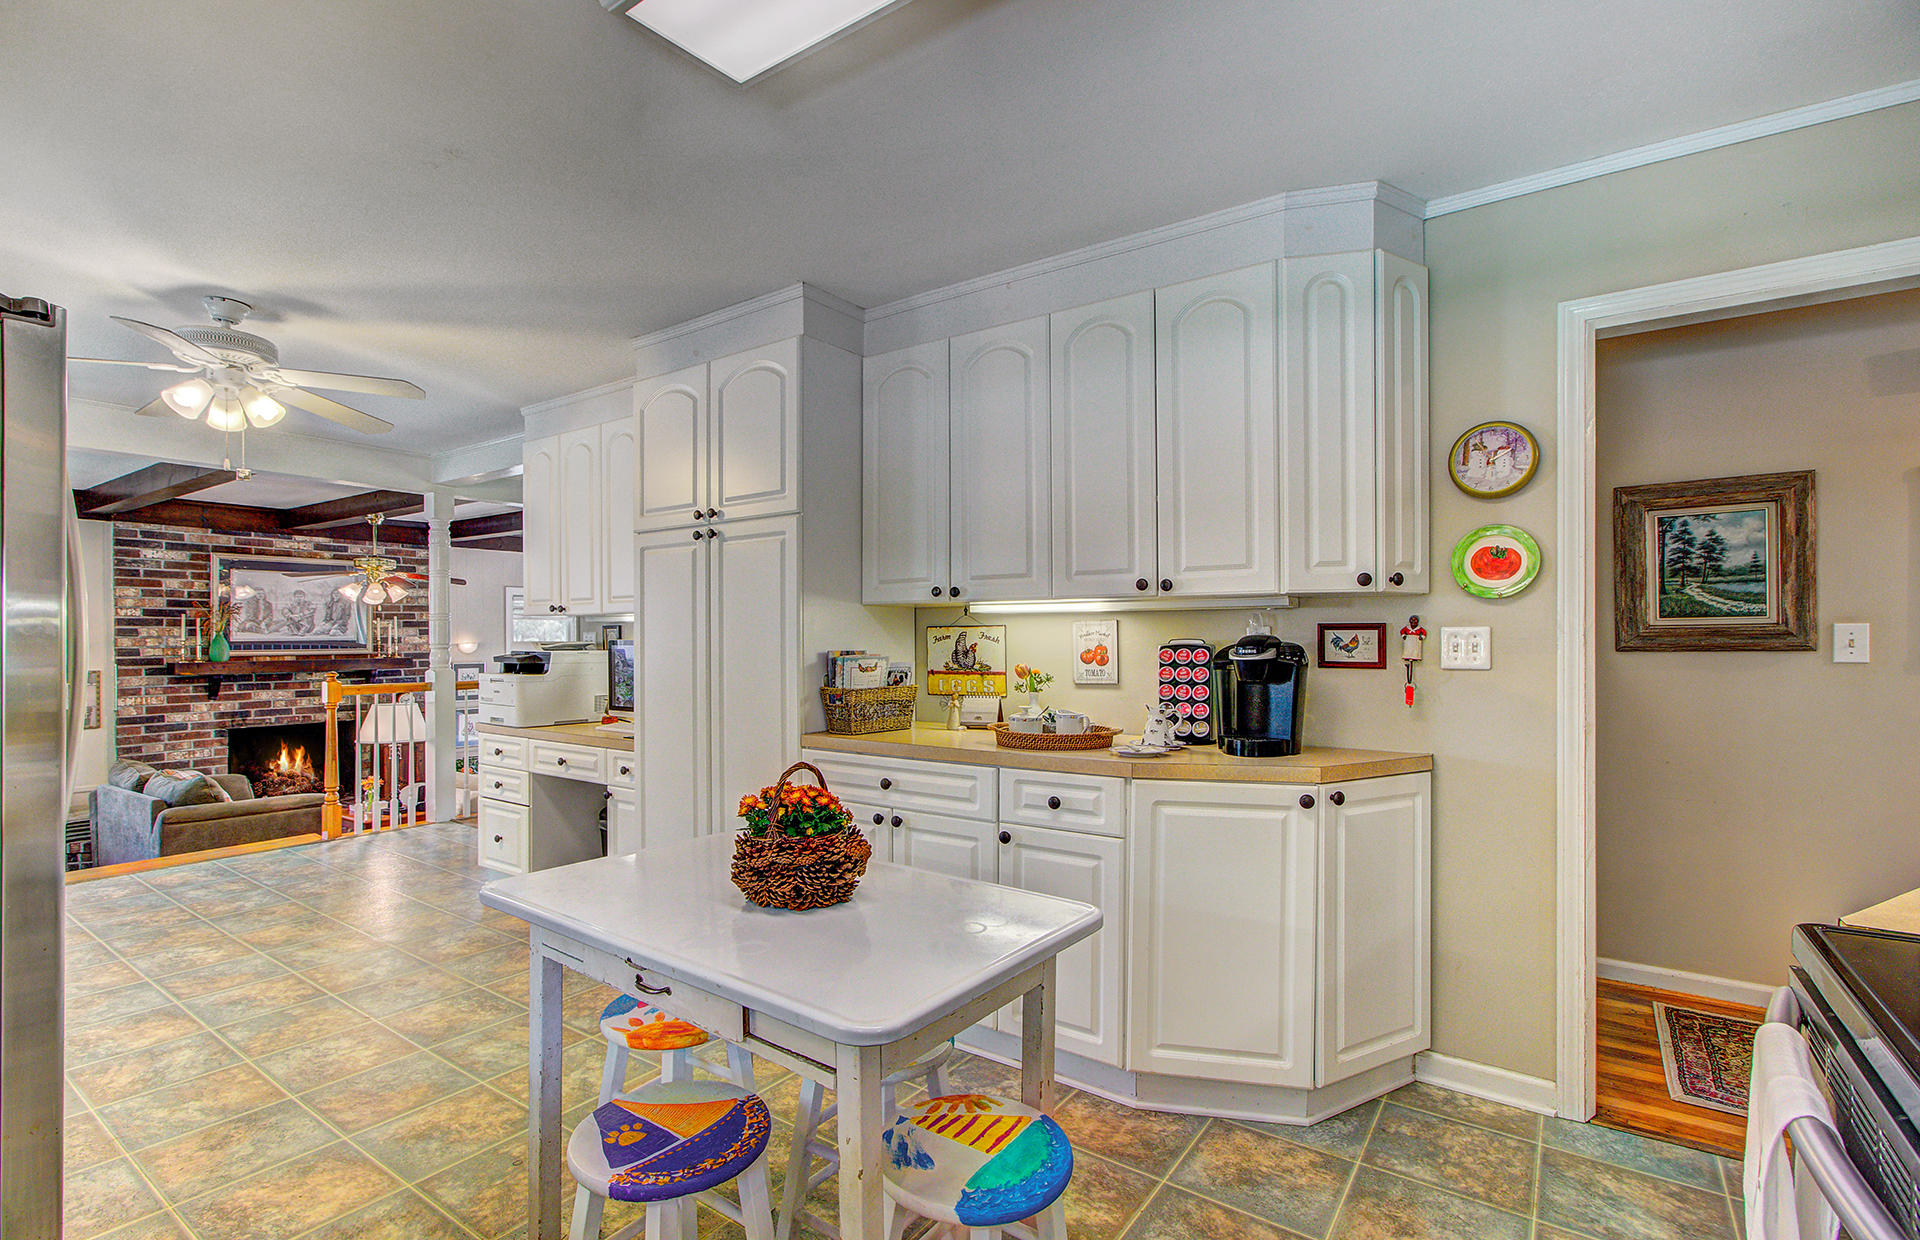 Sunset Shores Homes For Sale - 3646 Moonglow, Johns Island, SC - 30